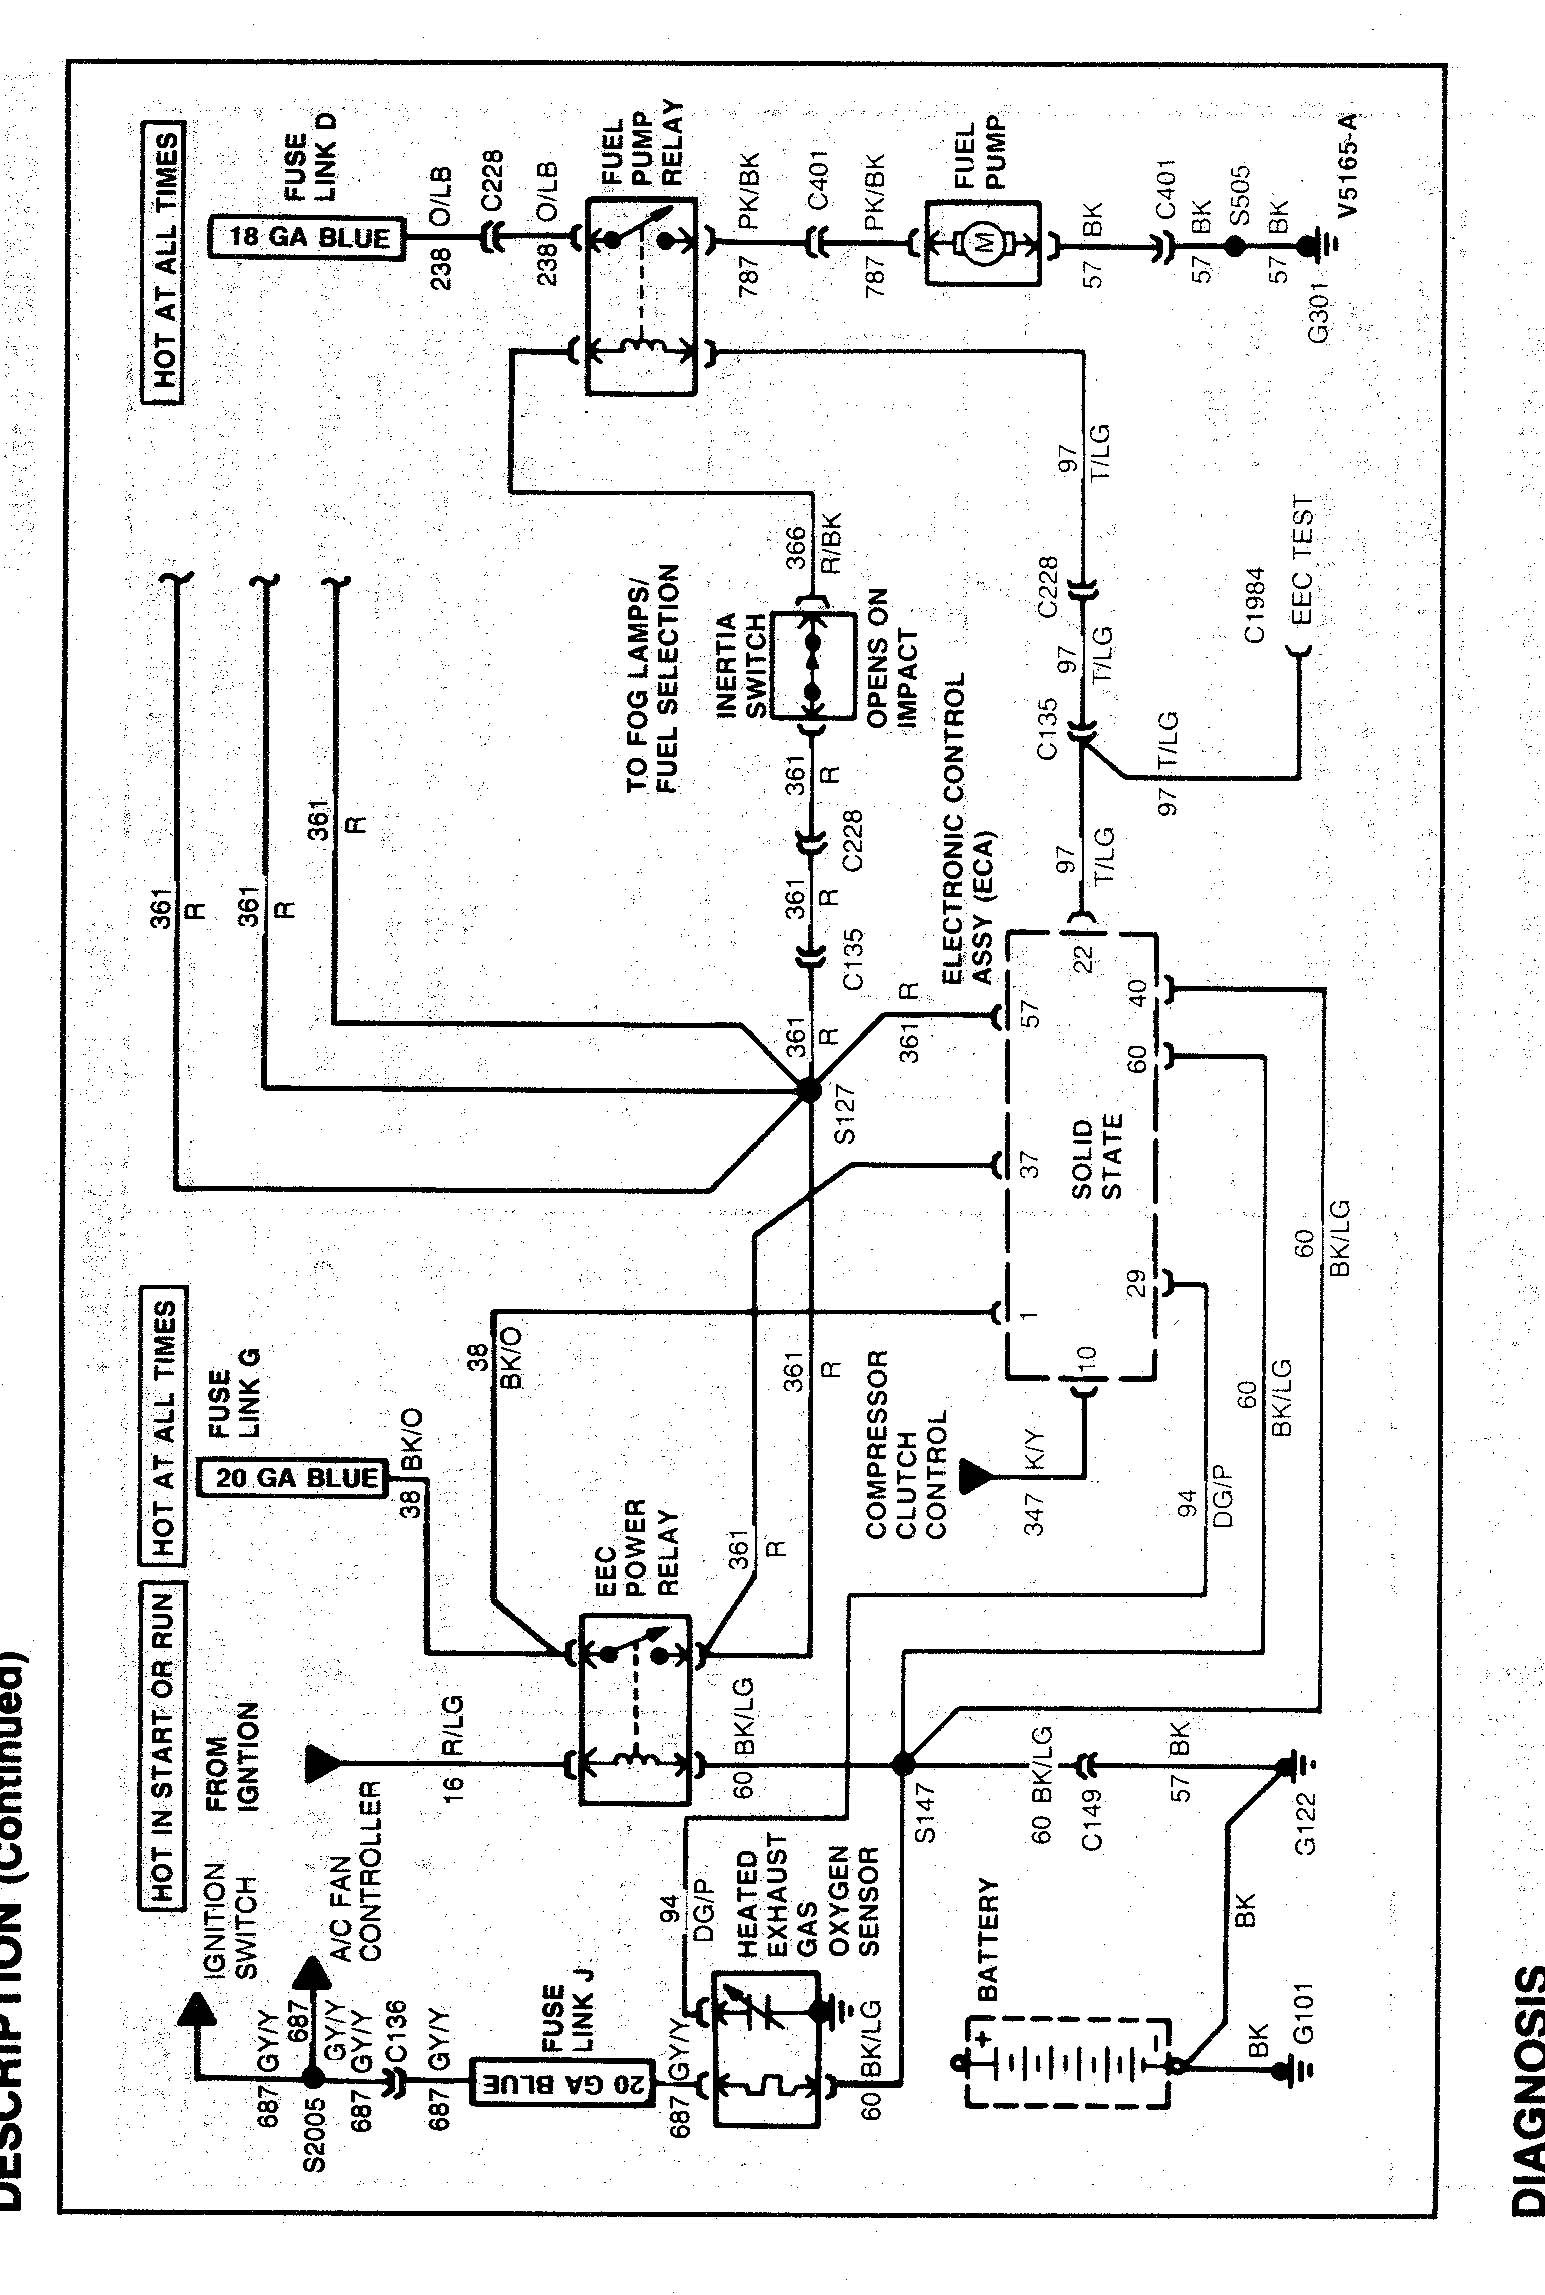 2004 mustang wiring diagram wiring diagram eec relay wire mustangforums com 2004 mustang fuse diagram 2004 mustang wiring diagram sciox Gallery